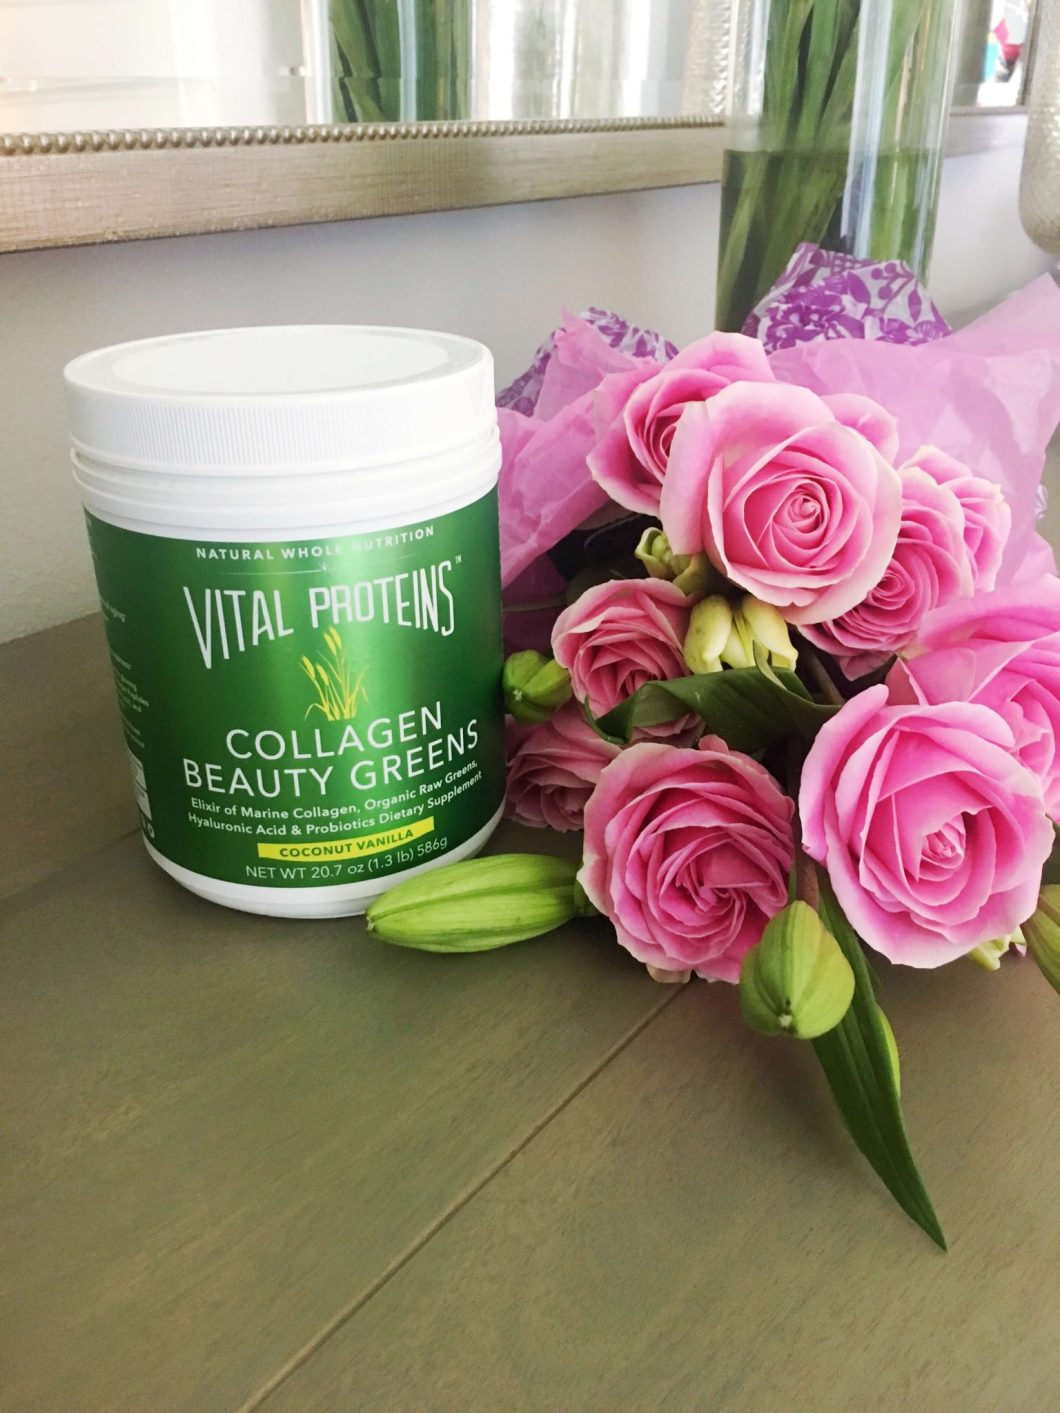 10 Day Beauty Greens Challenge // Why you need Collagen // Vital Proteins // www.thehisfor.com